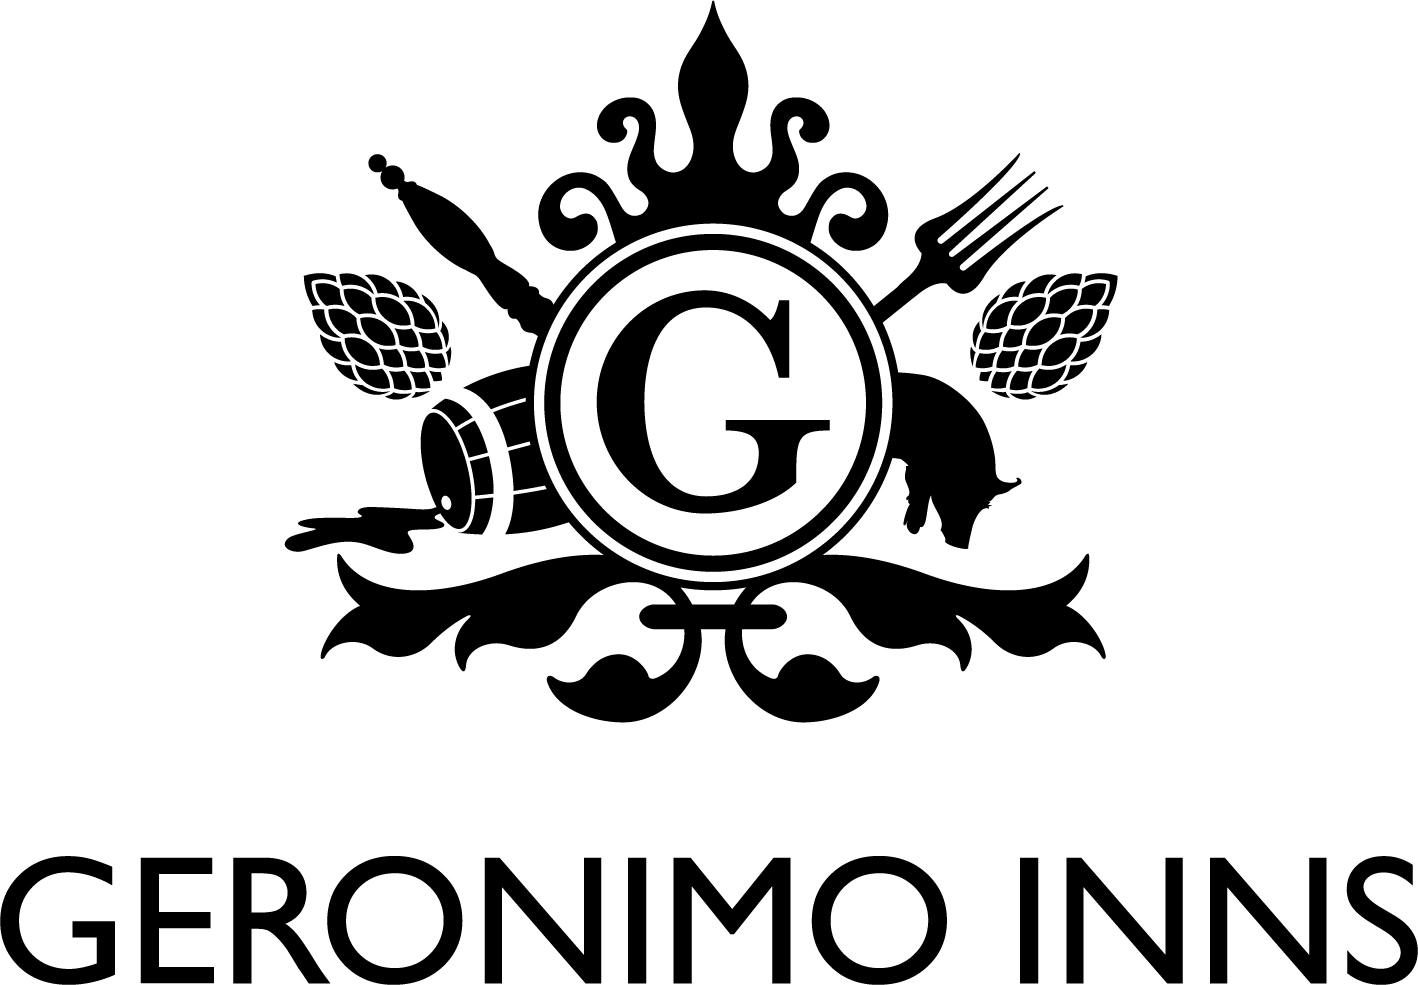 Trusted by Geronimo Inns